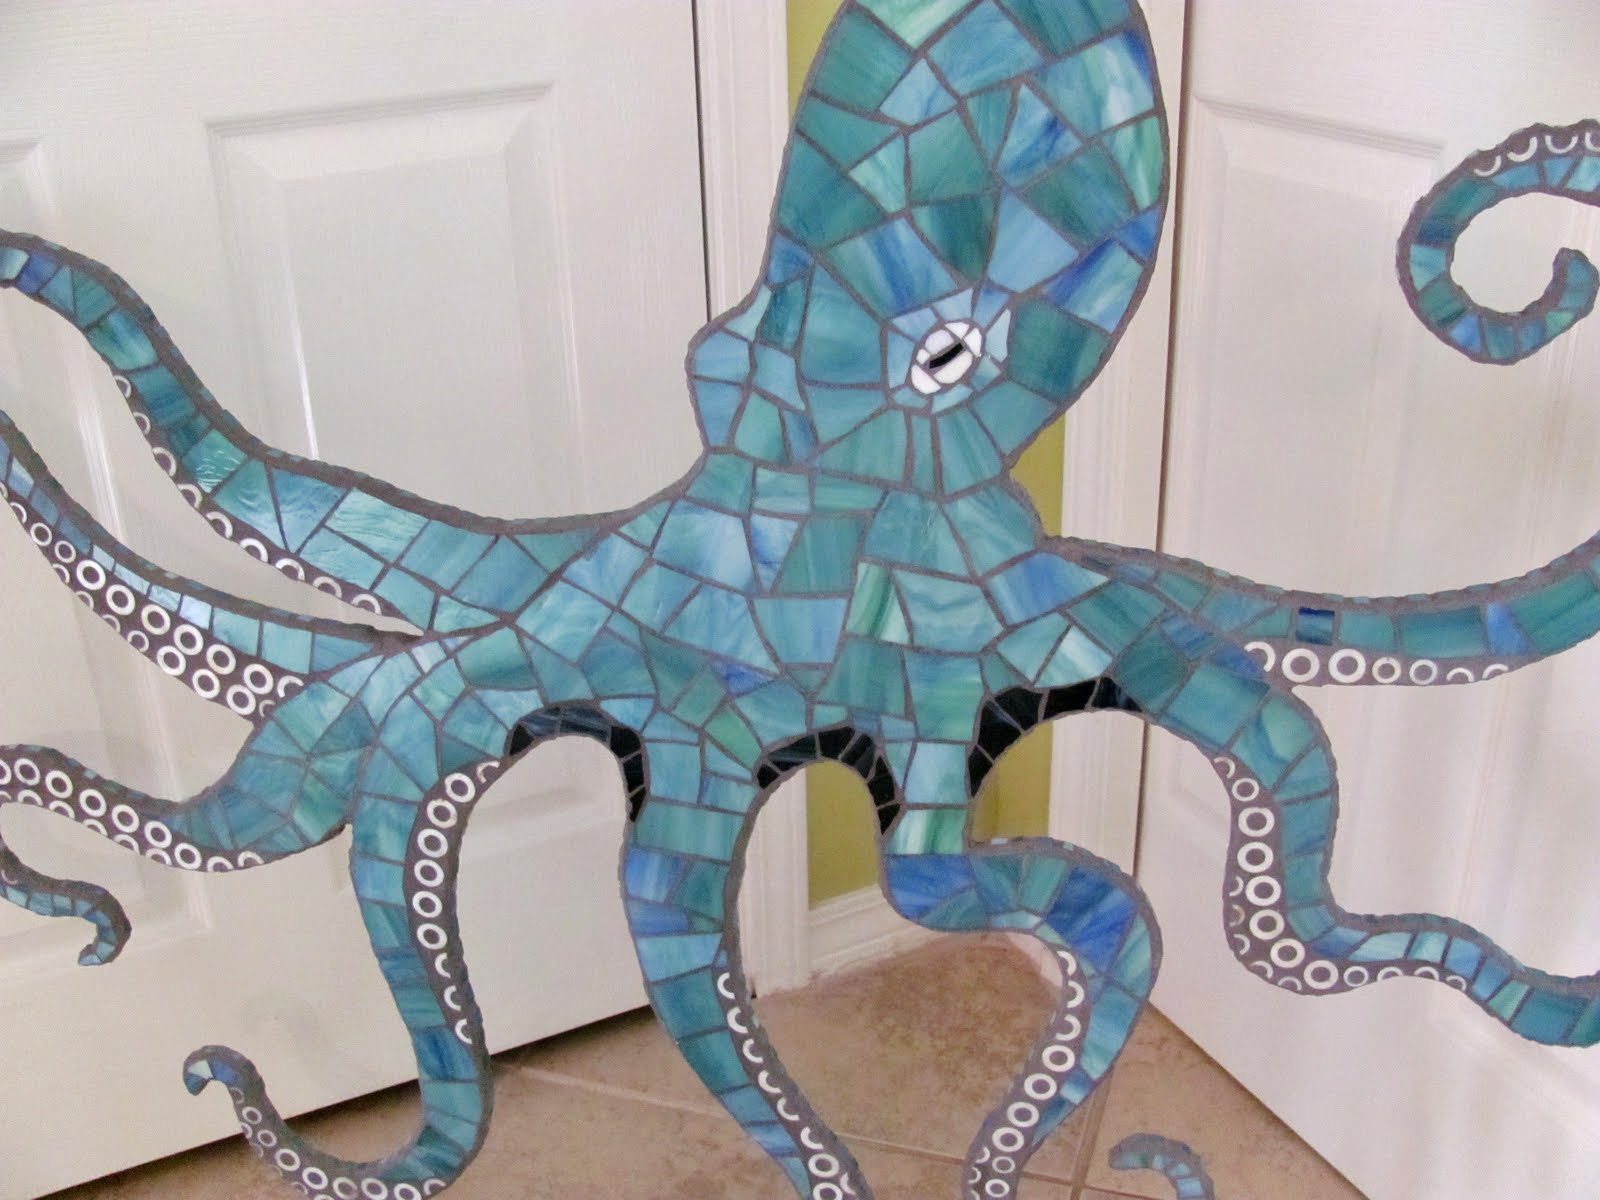 Octopus Mosaic Wall Art Large 4 Ft Stained Glass Mosaic